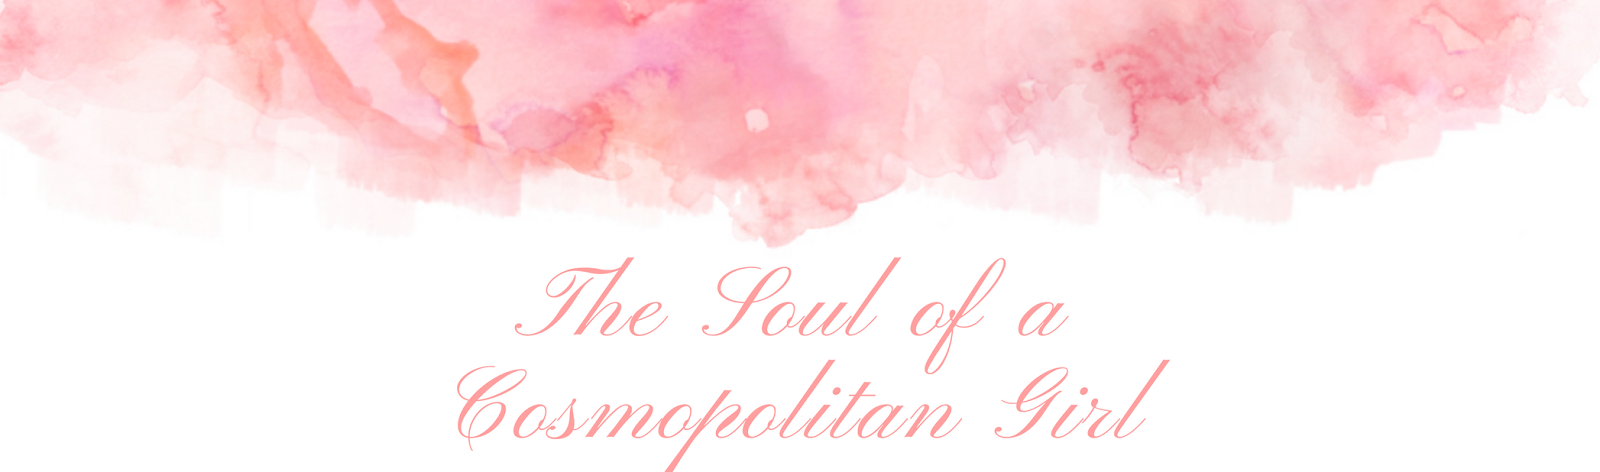 The soul of a cosmopolitan girl